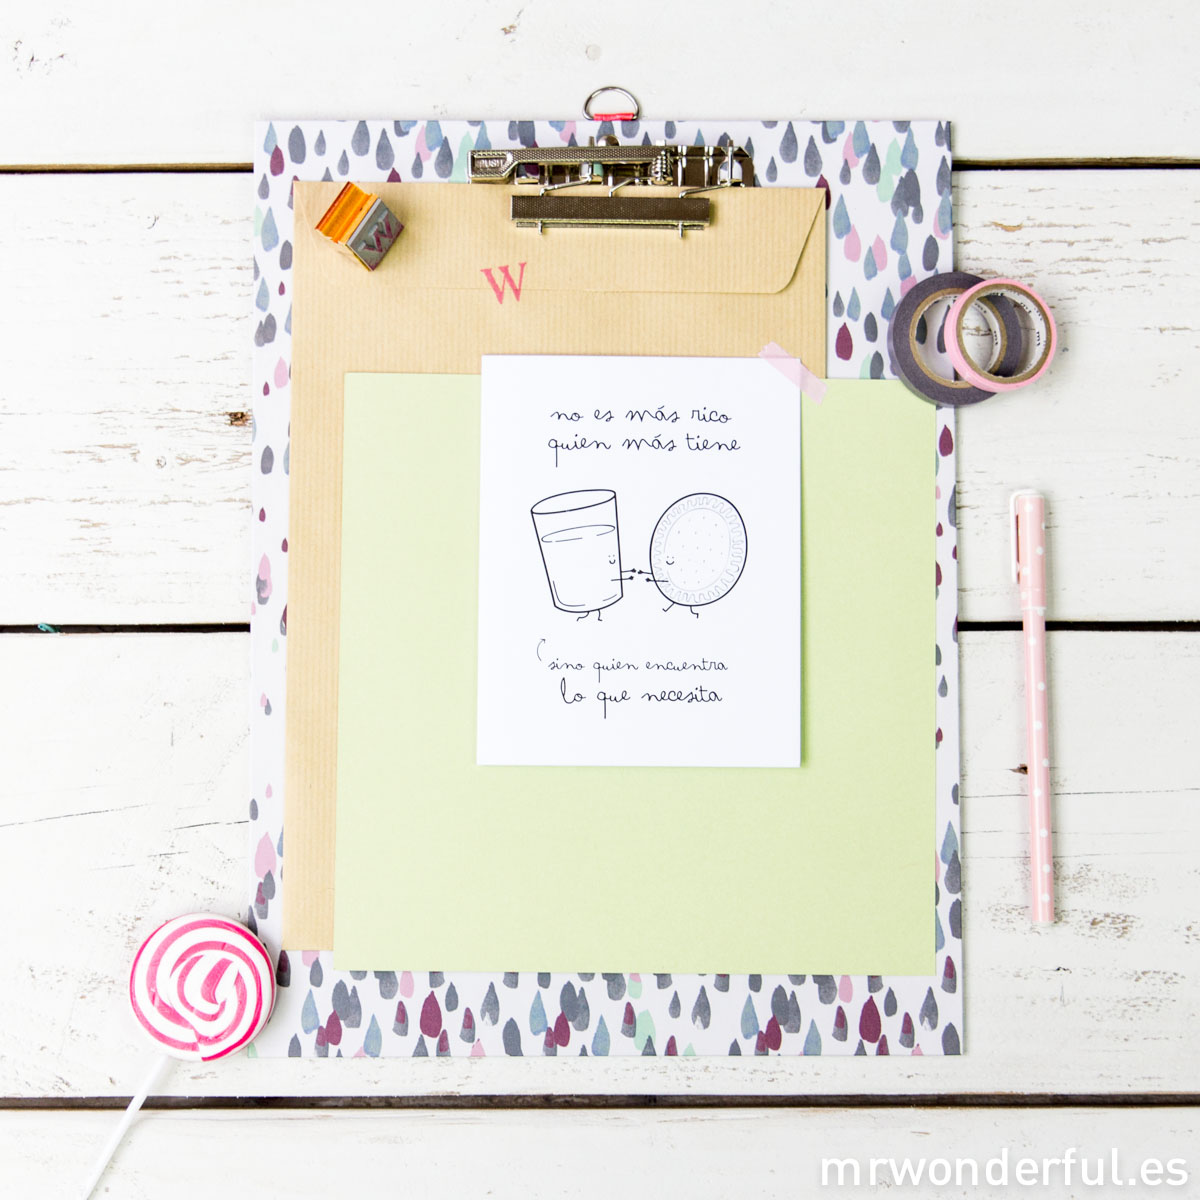 mrwonderful_SK0960_1_clipboard_colores-4-2